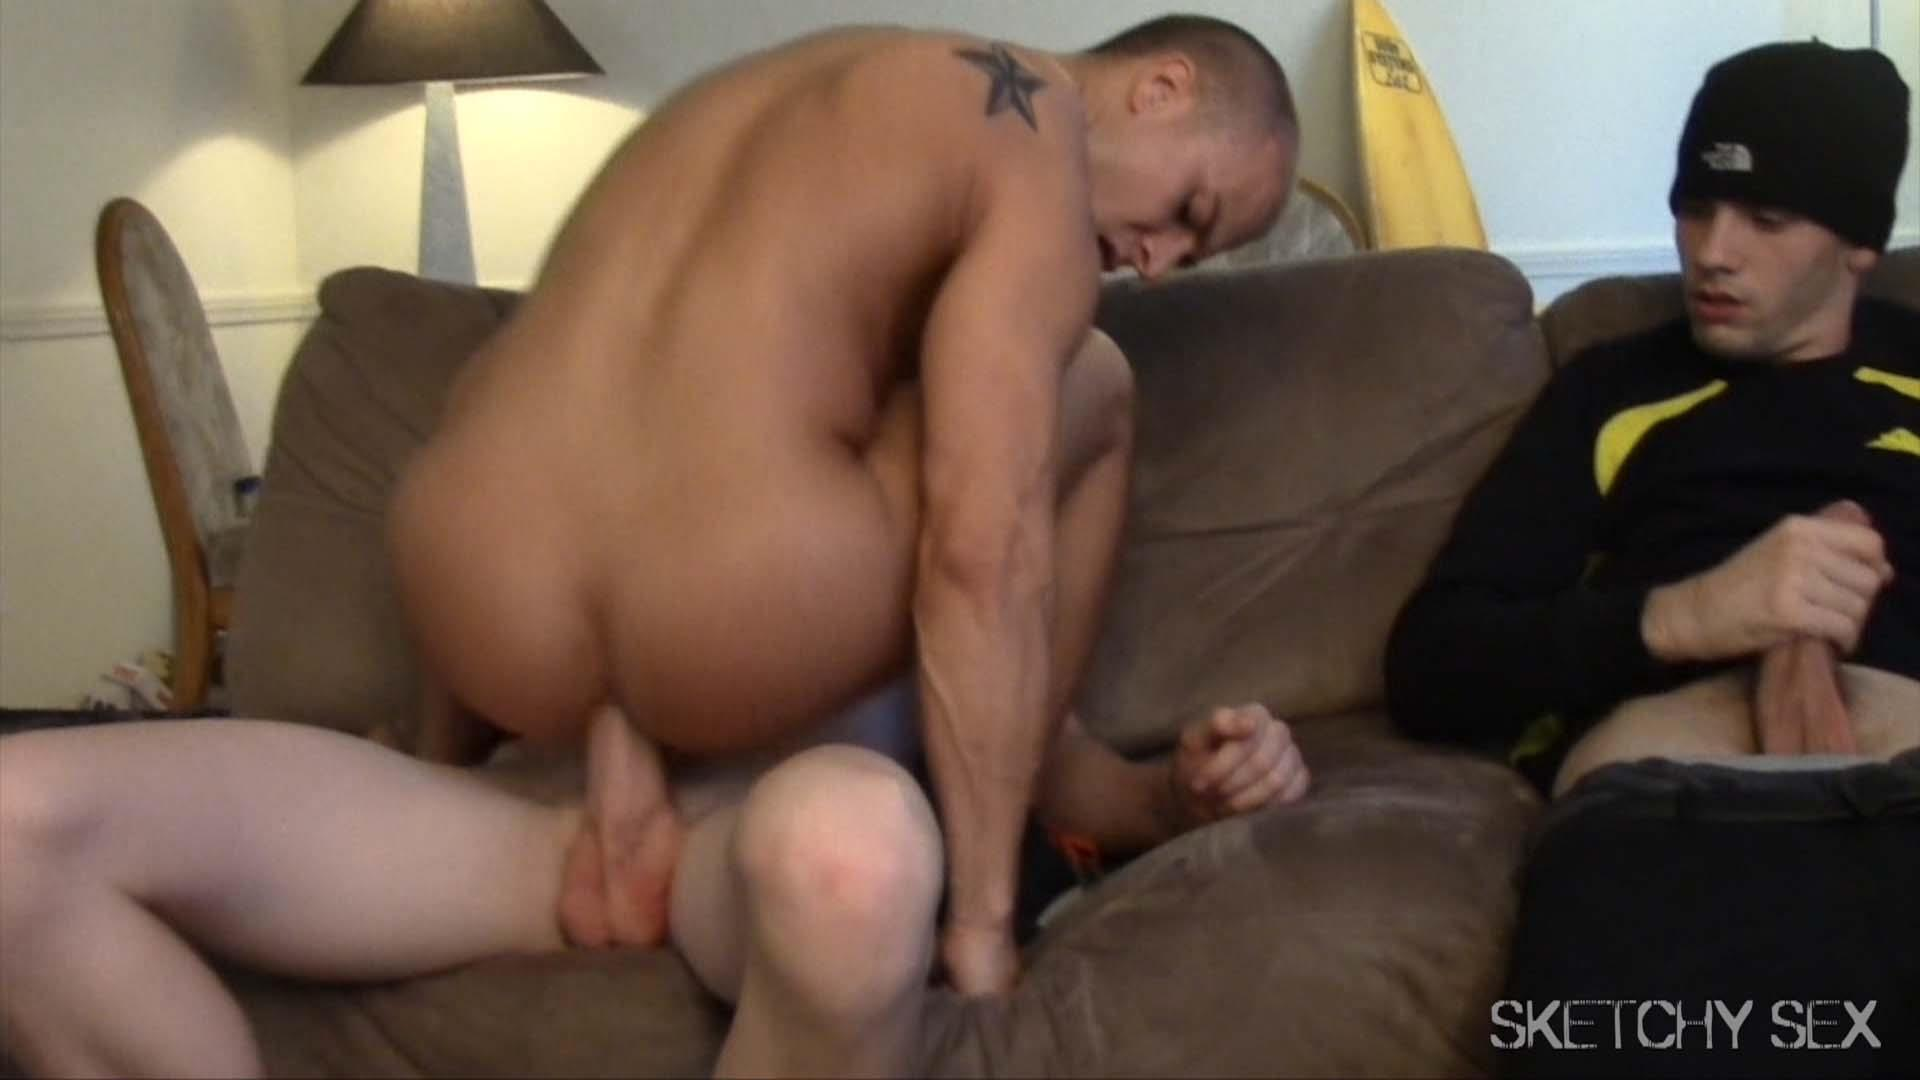 Free gay tube video amateur